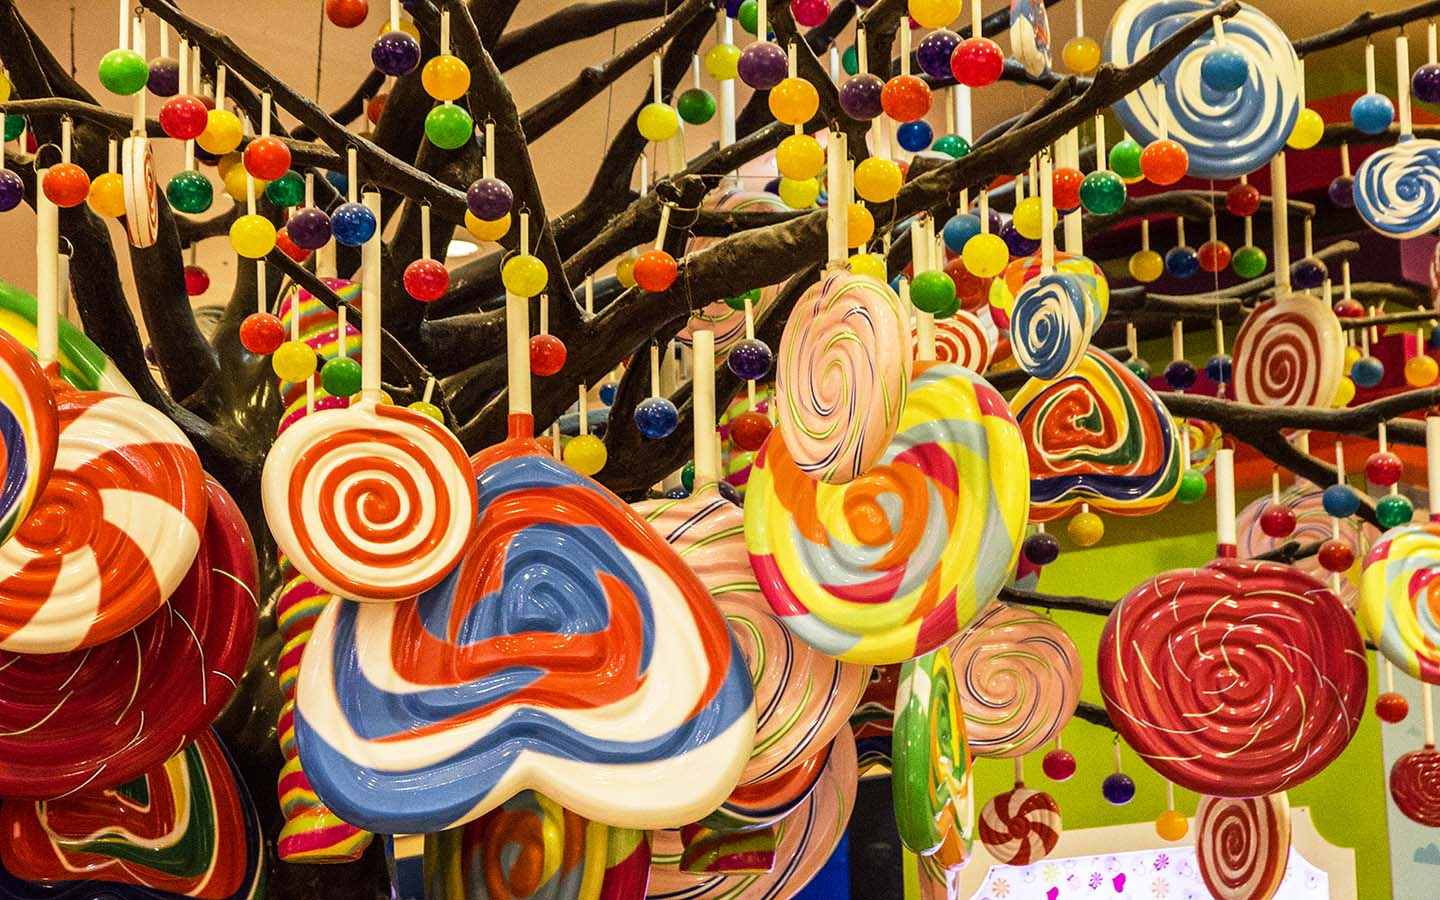 the candy tree at Candylicious in Burj Khalifa